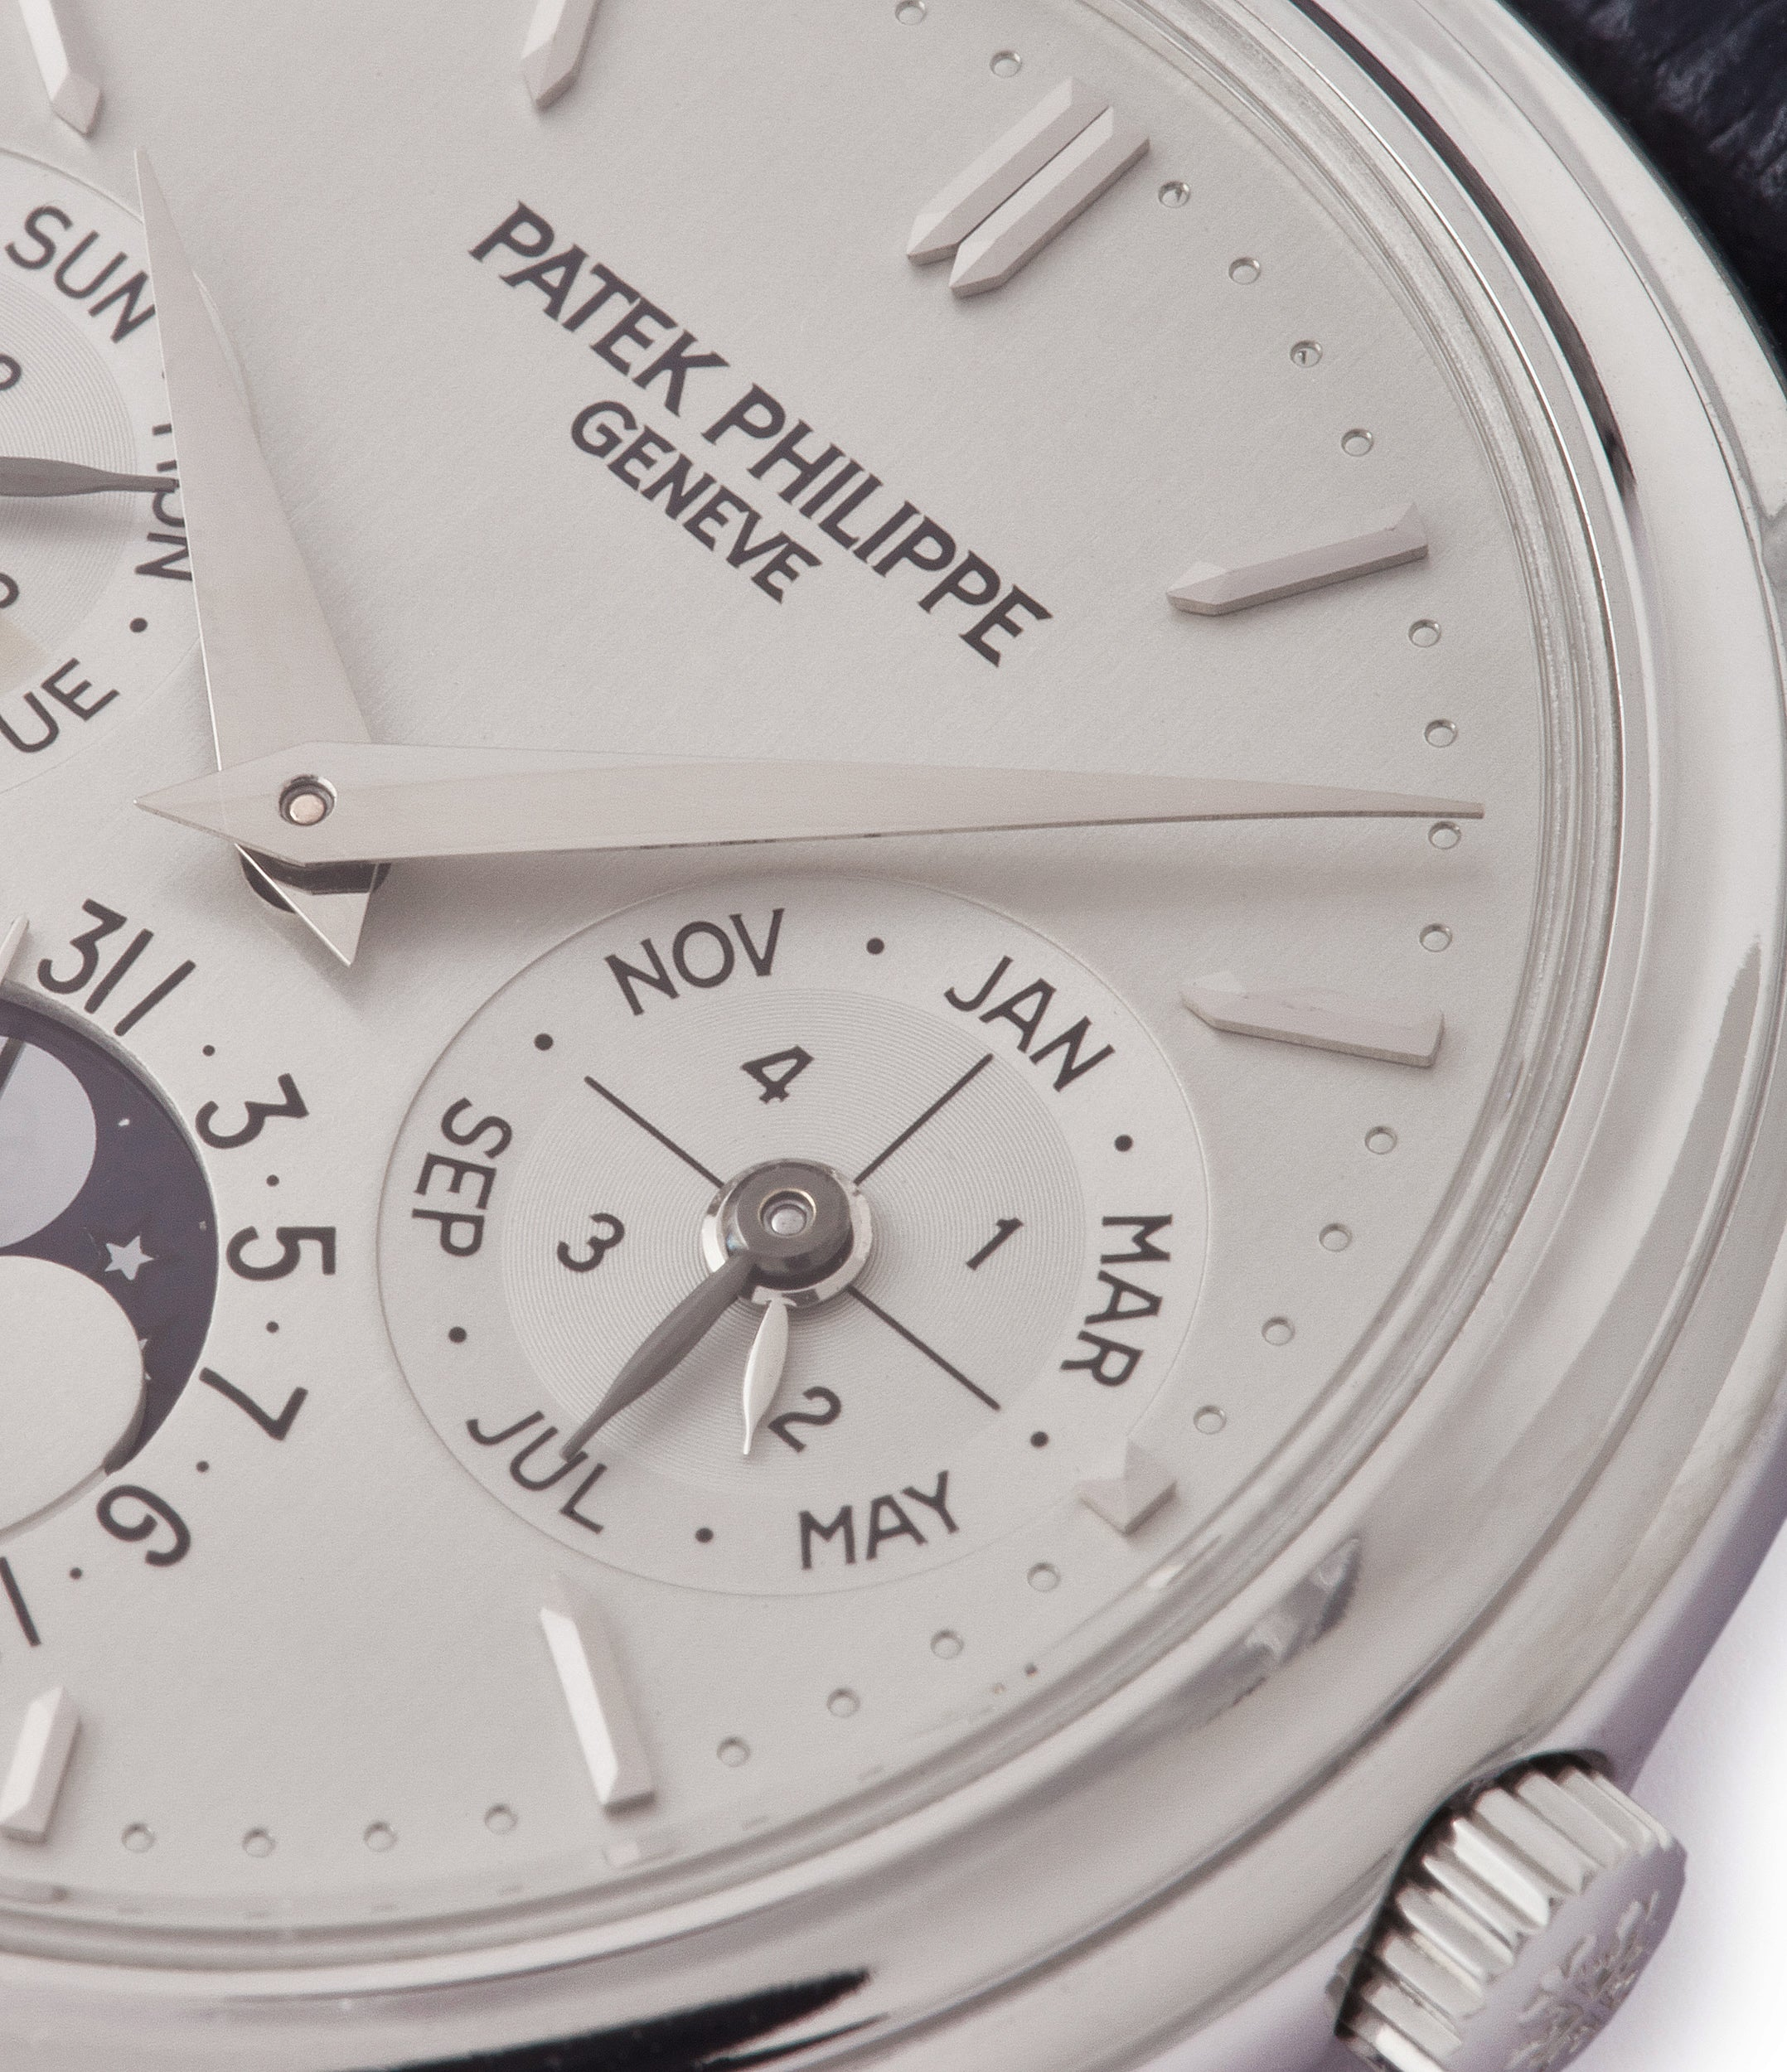 perpetual calendar Patek Philippe 3940P platinum rare dress watch full set for sale online at A Collected Man London UK specialist of rare watches